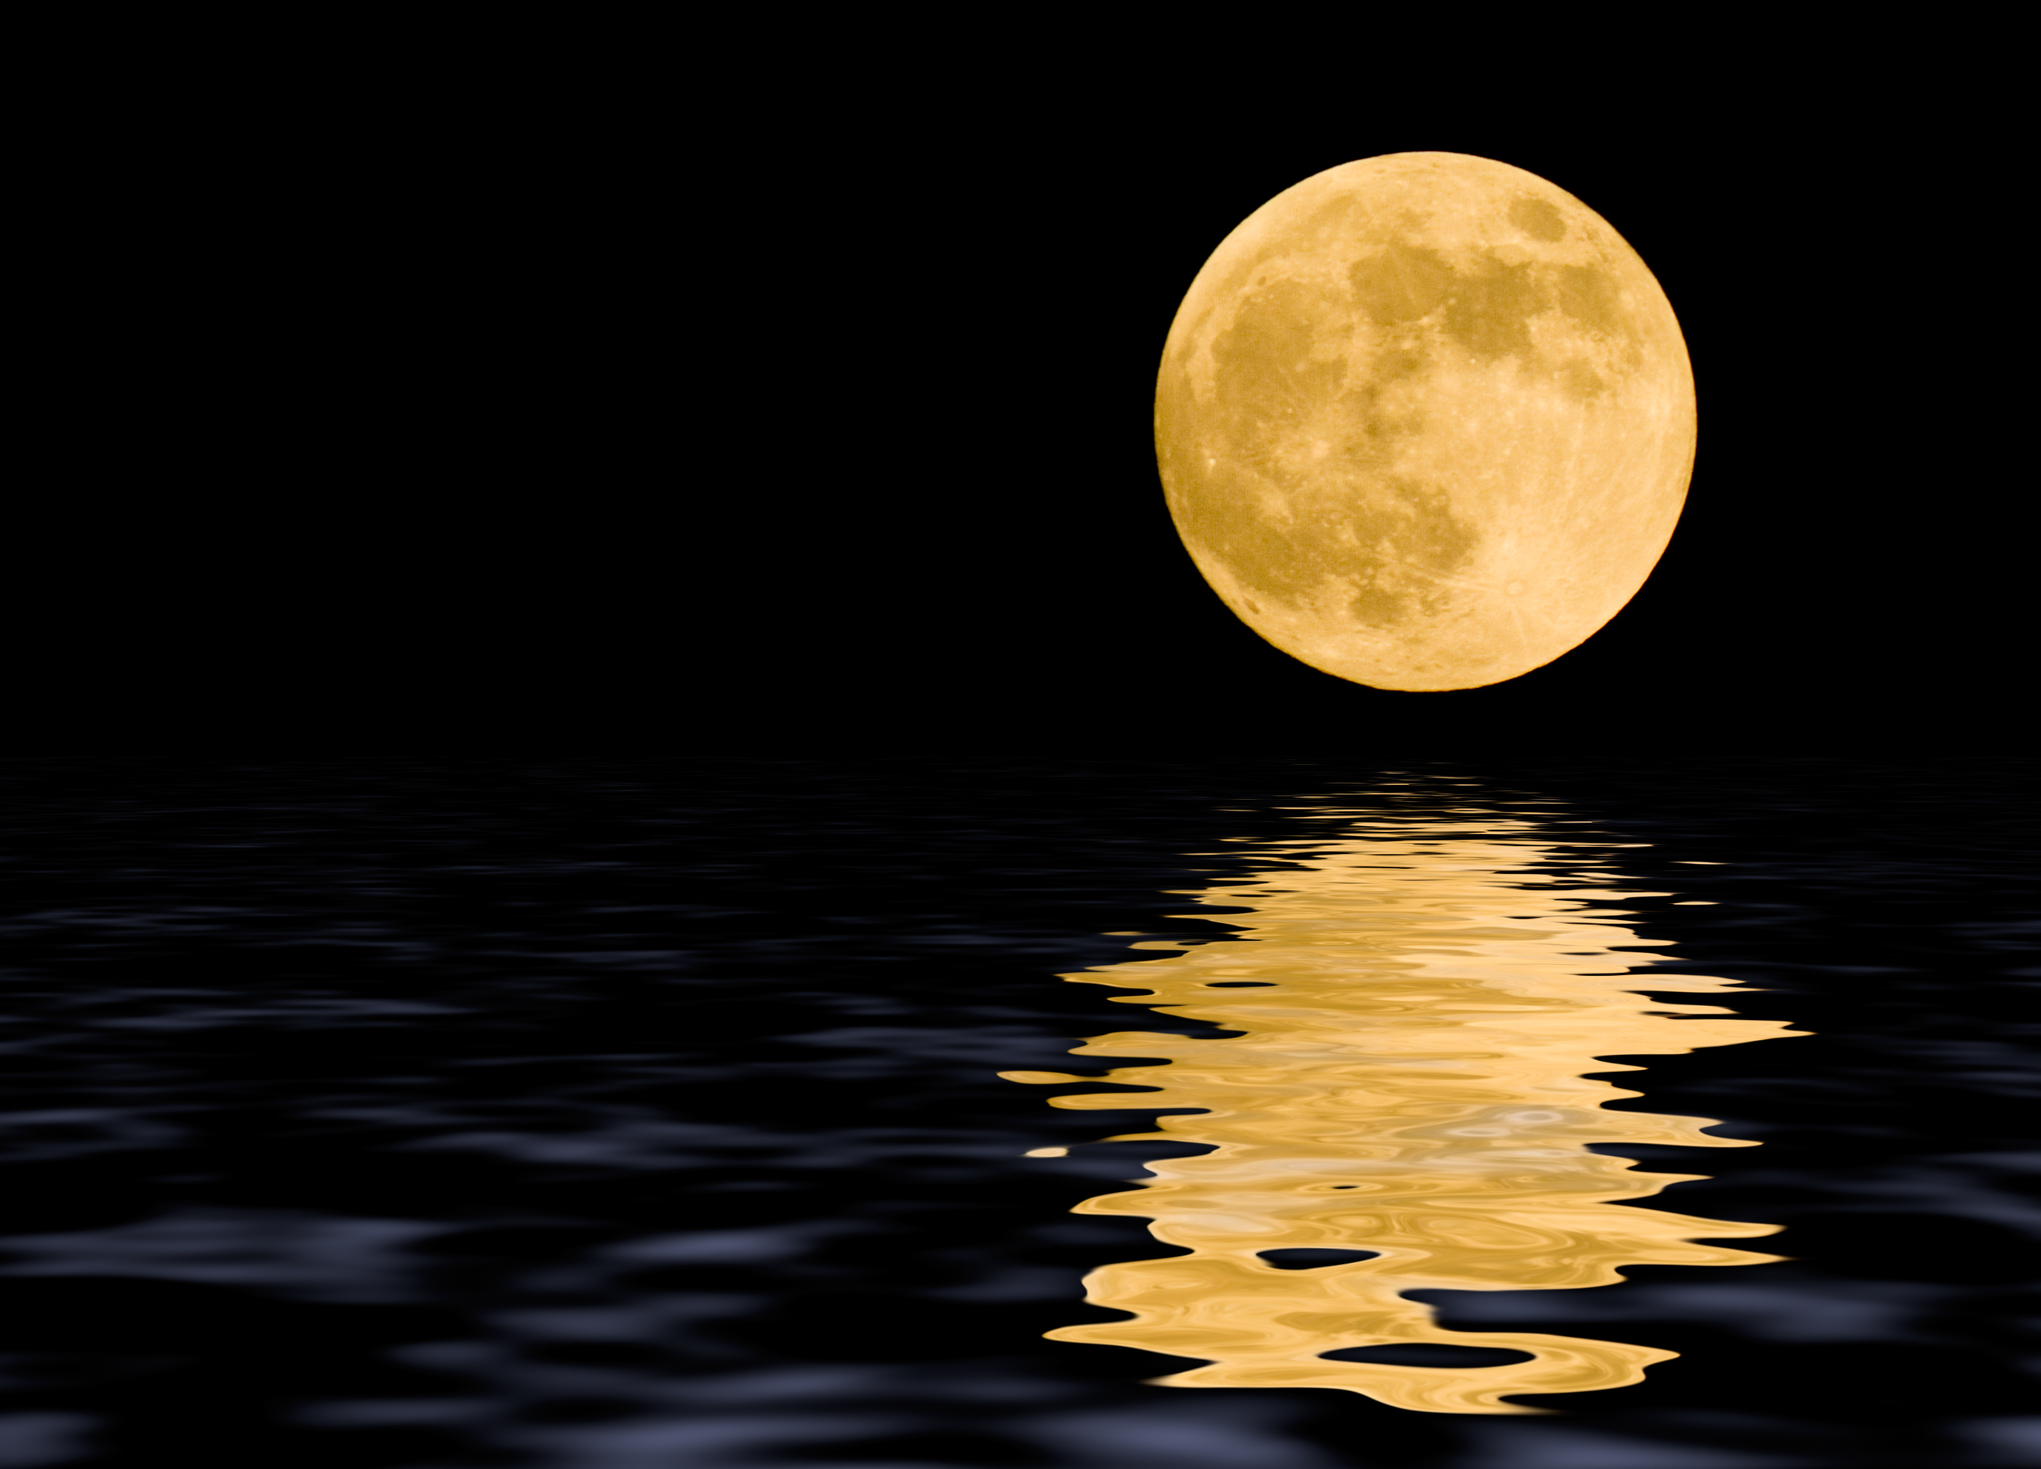 Moon at midnight with some reflections in the water